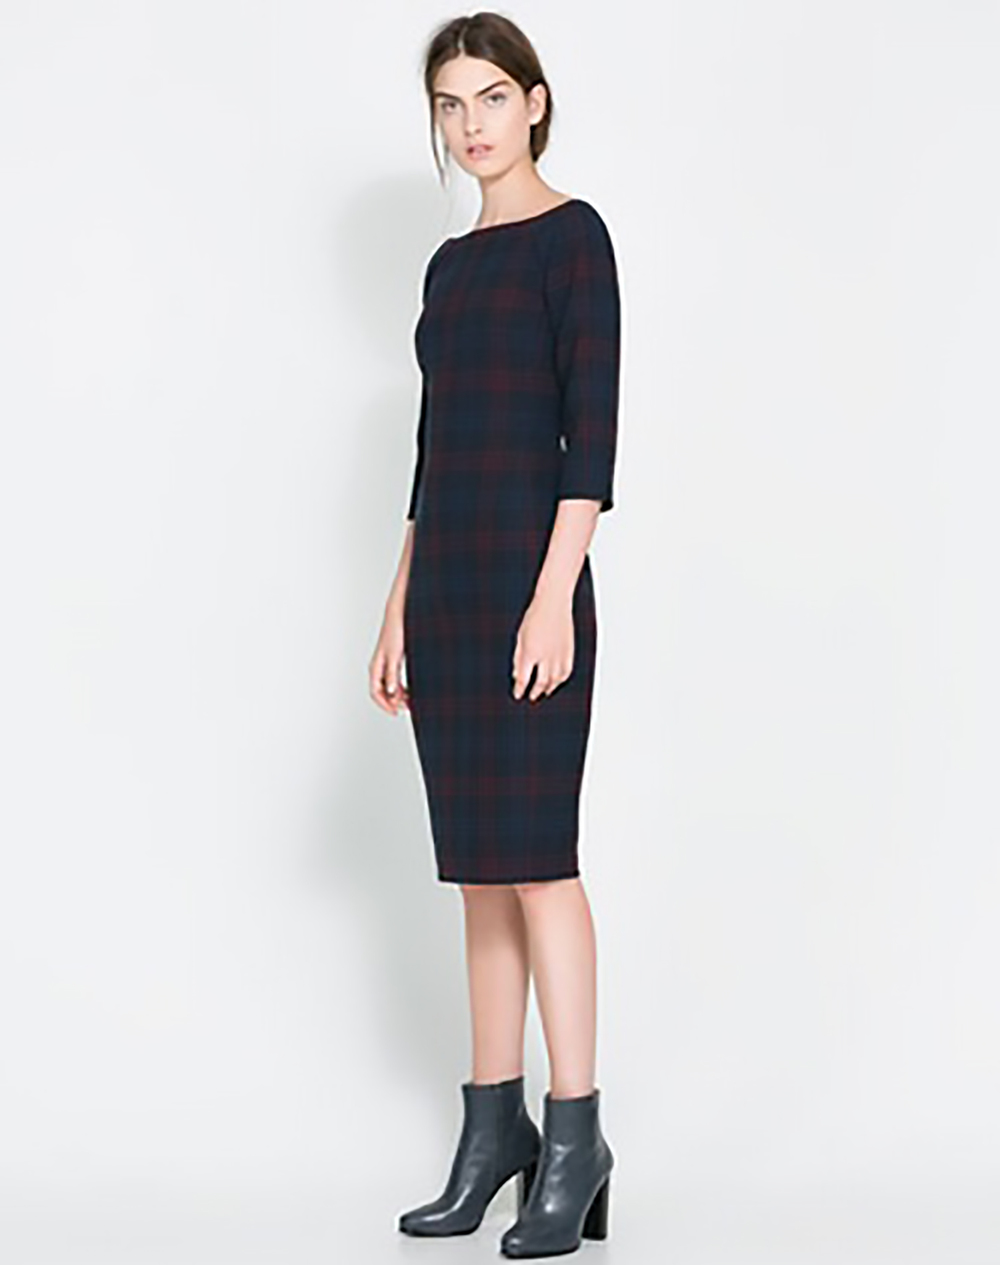 zara fitted checked dress holiday party 1500.jpg